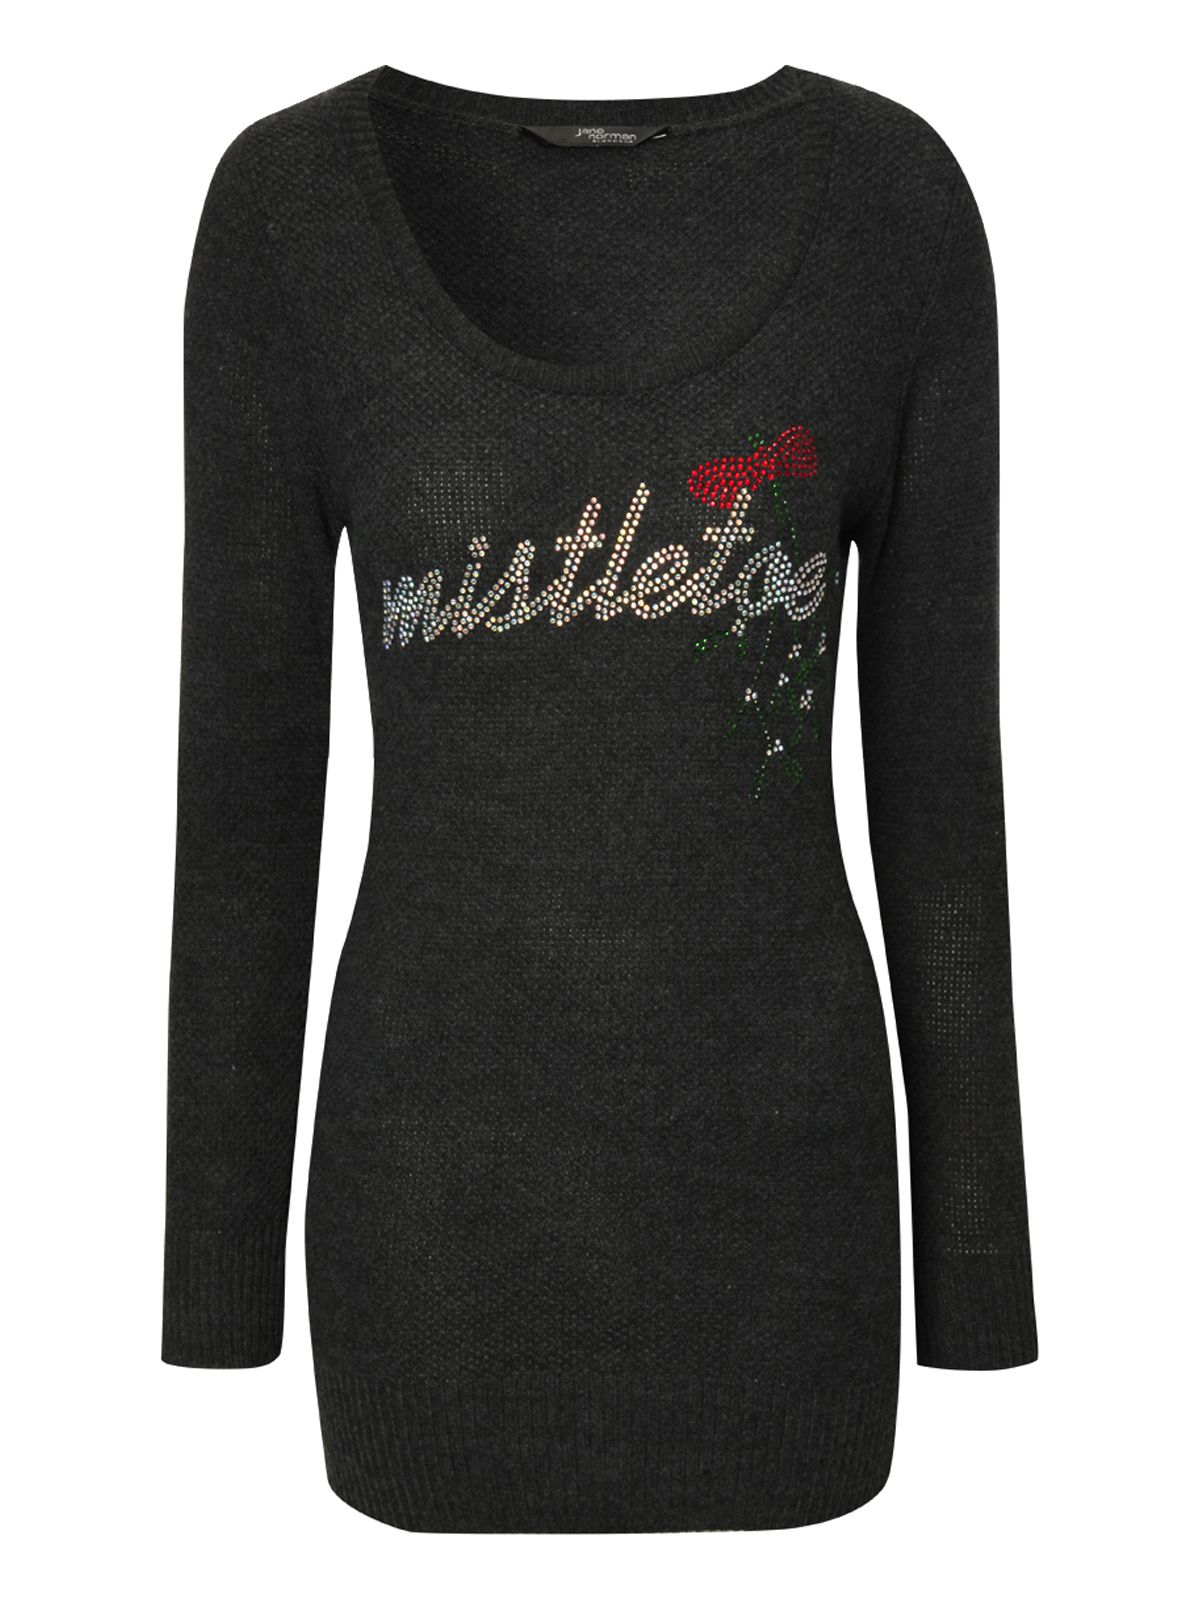 Diamante Mistletoe Jumper